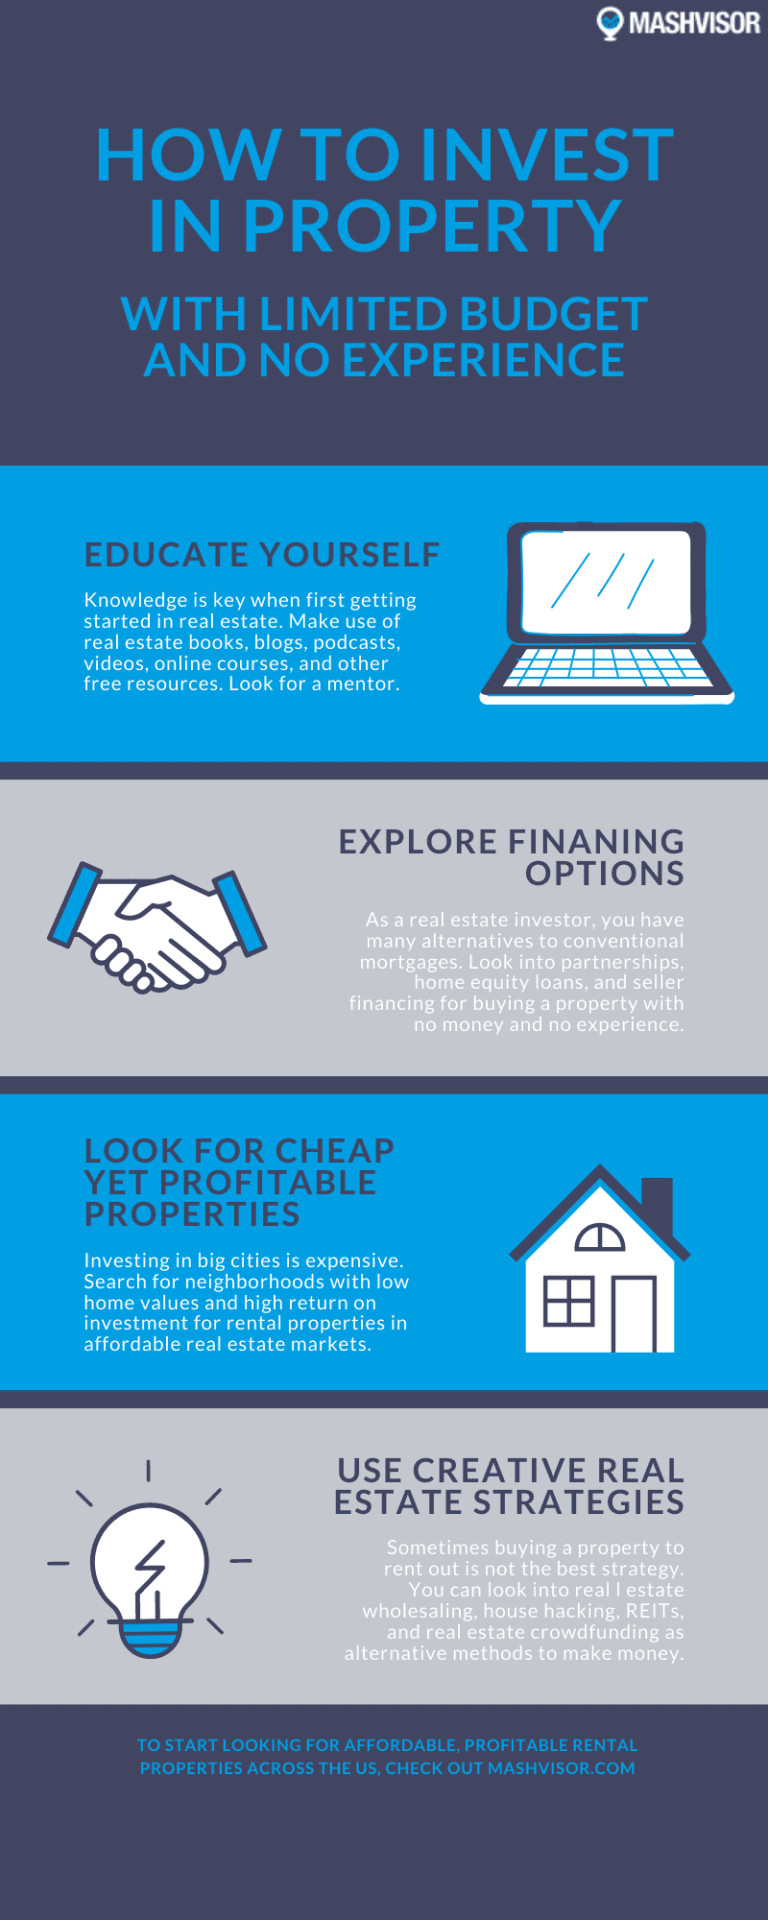 How to Invest in Property With Limited Budget and No Experience Infographic